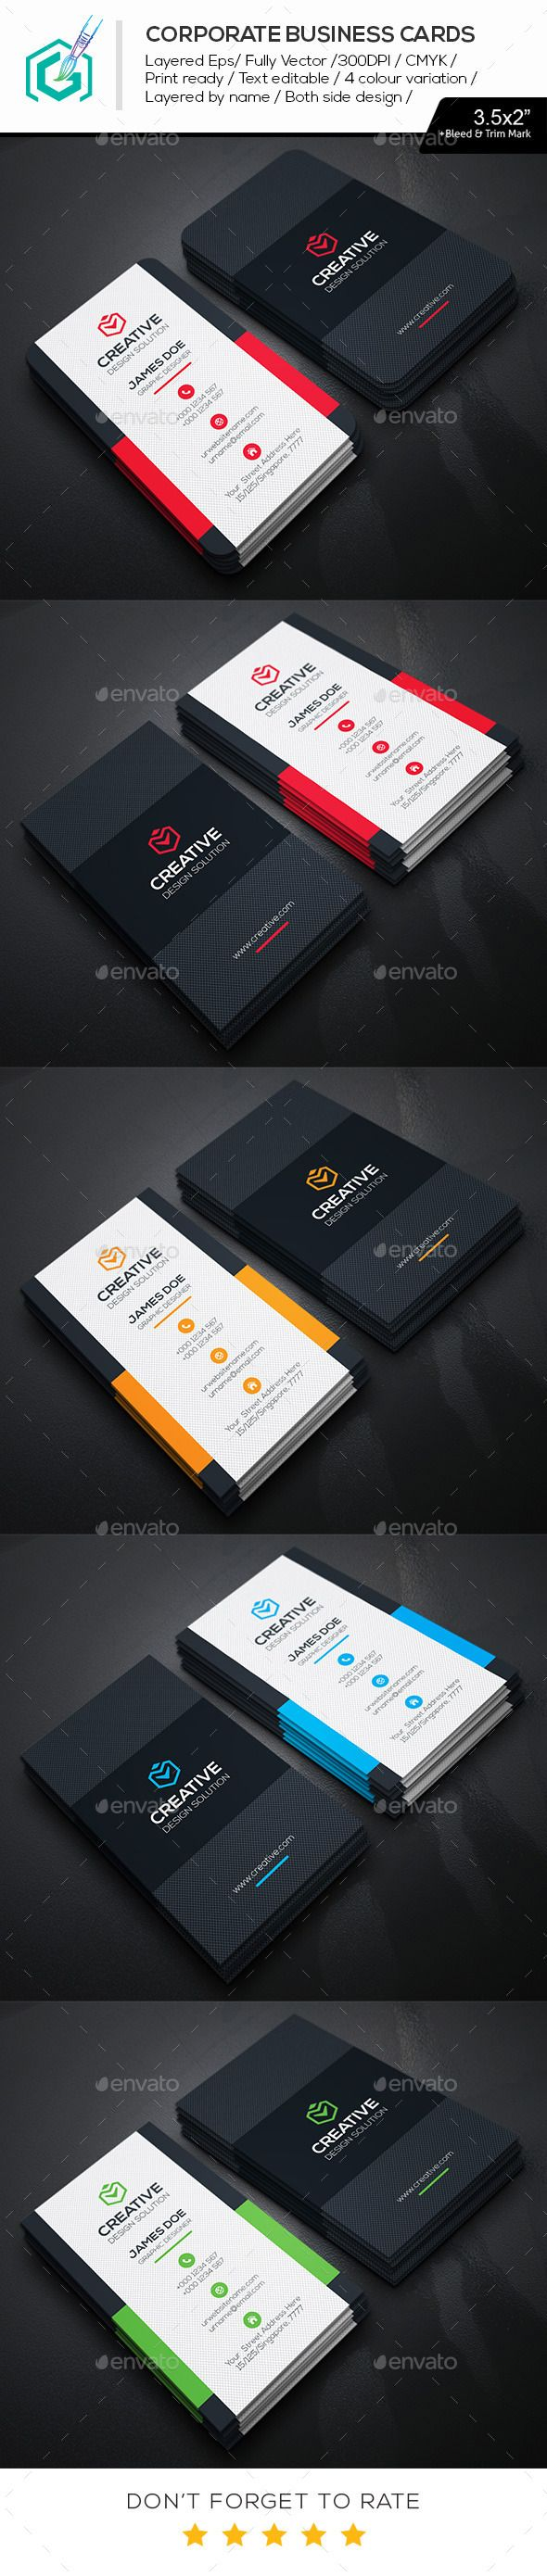 26 Best Modern Business Cards Images On Pinterest Business Card